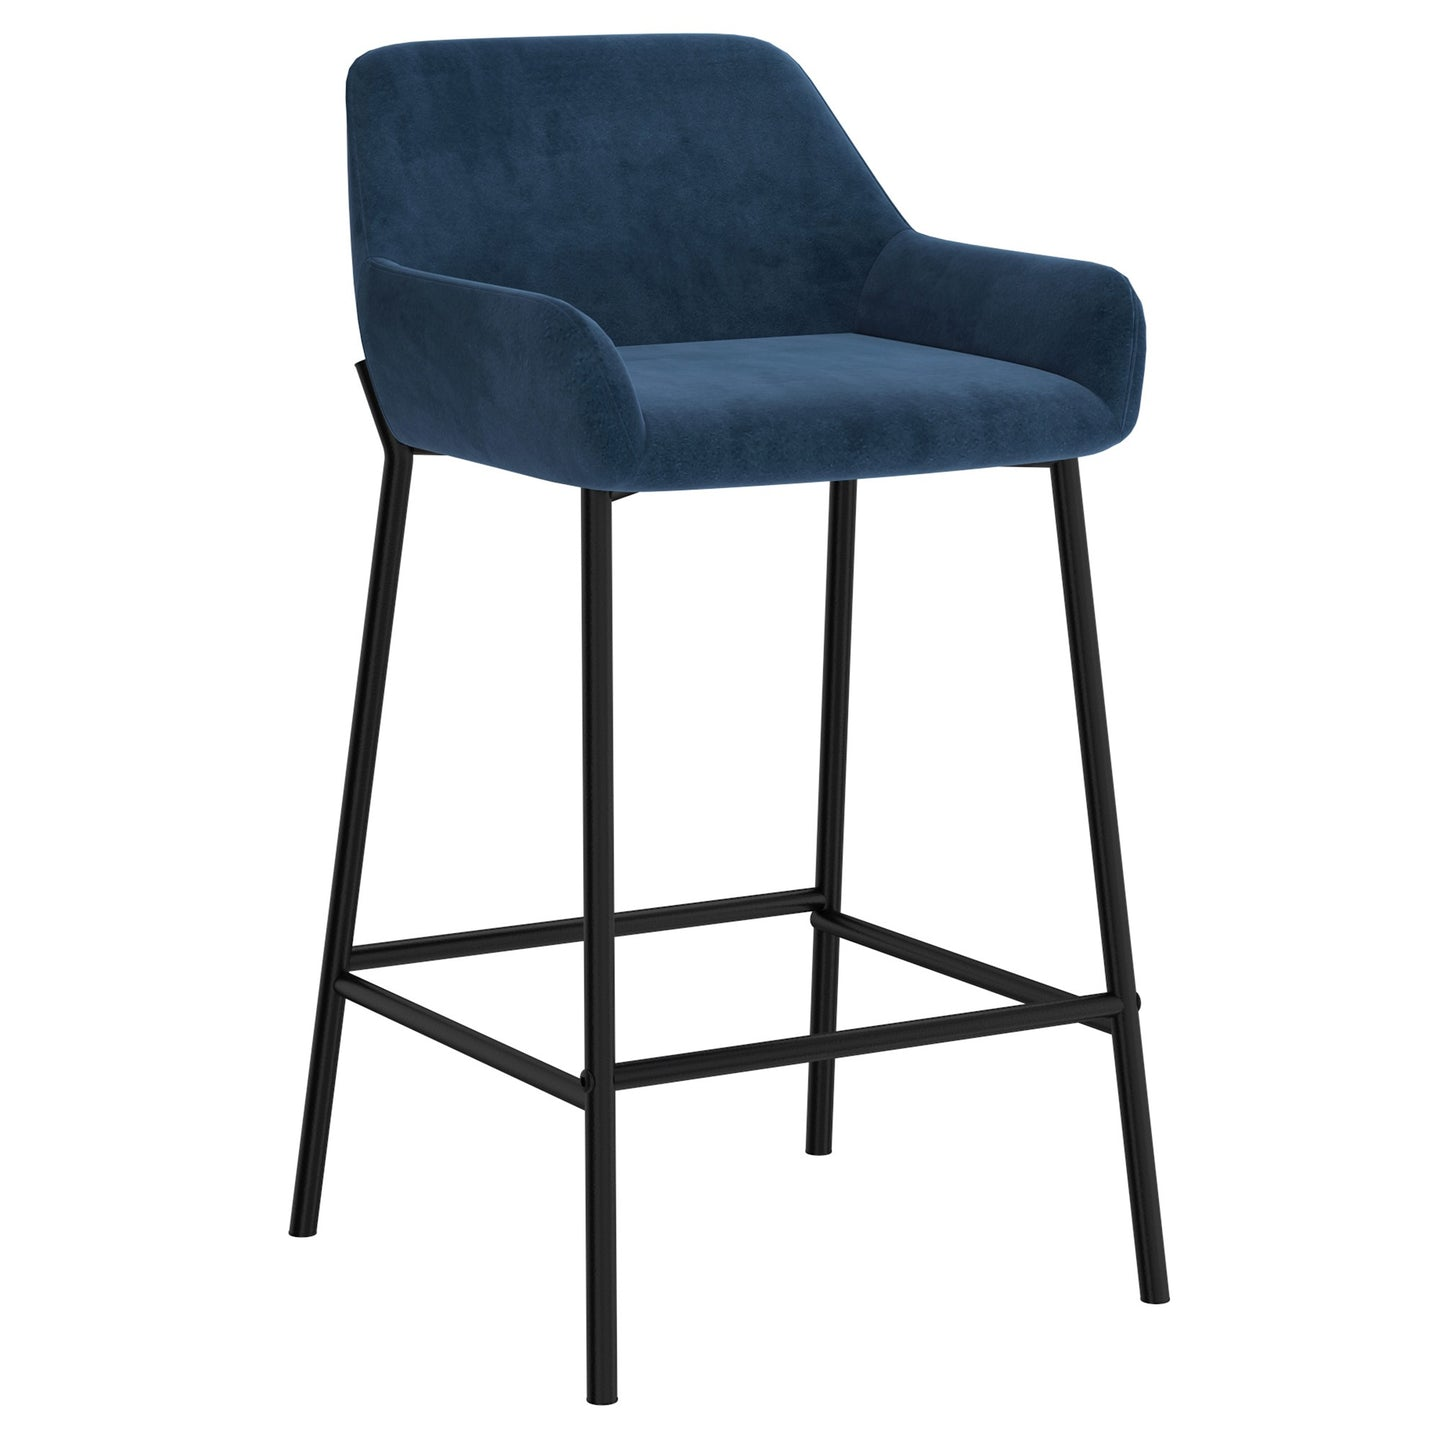 Baily 26'' Counter Stool set of 2 in Blue Price shown for